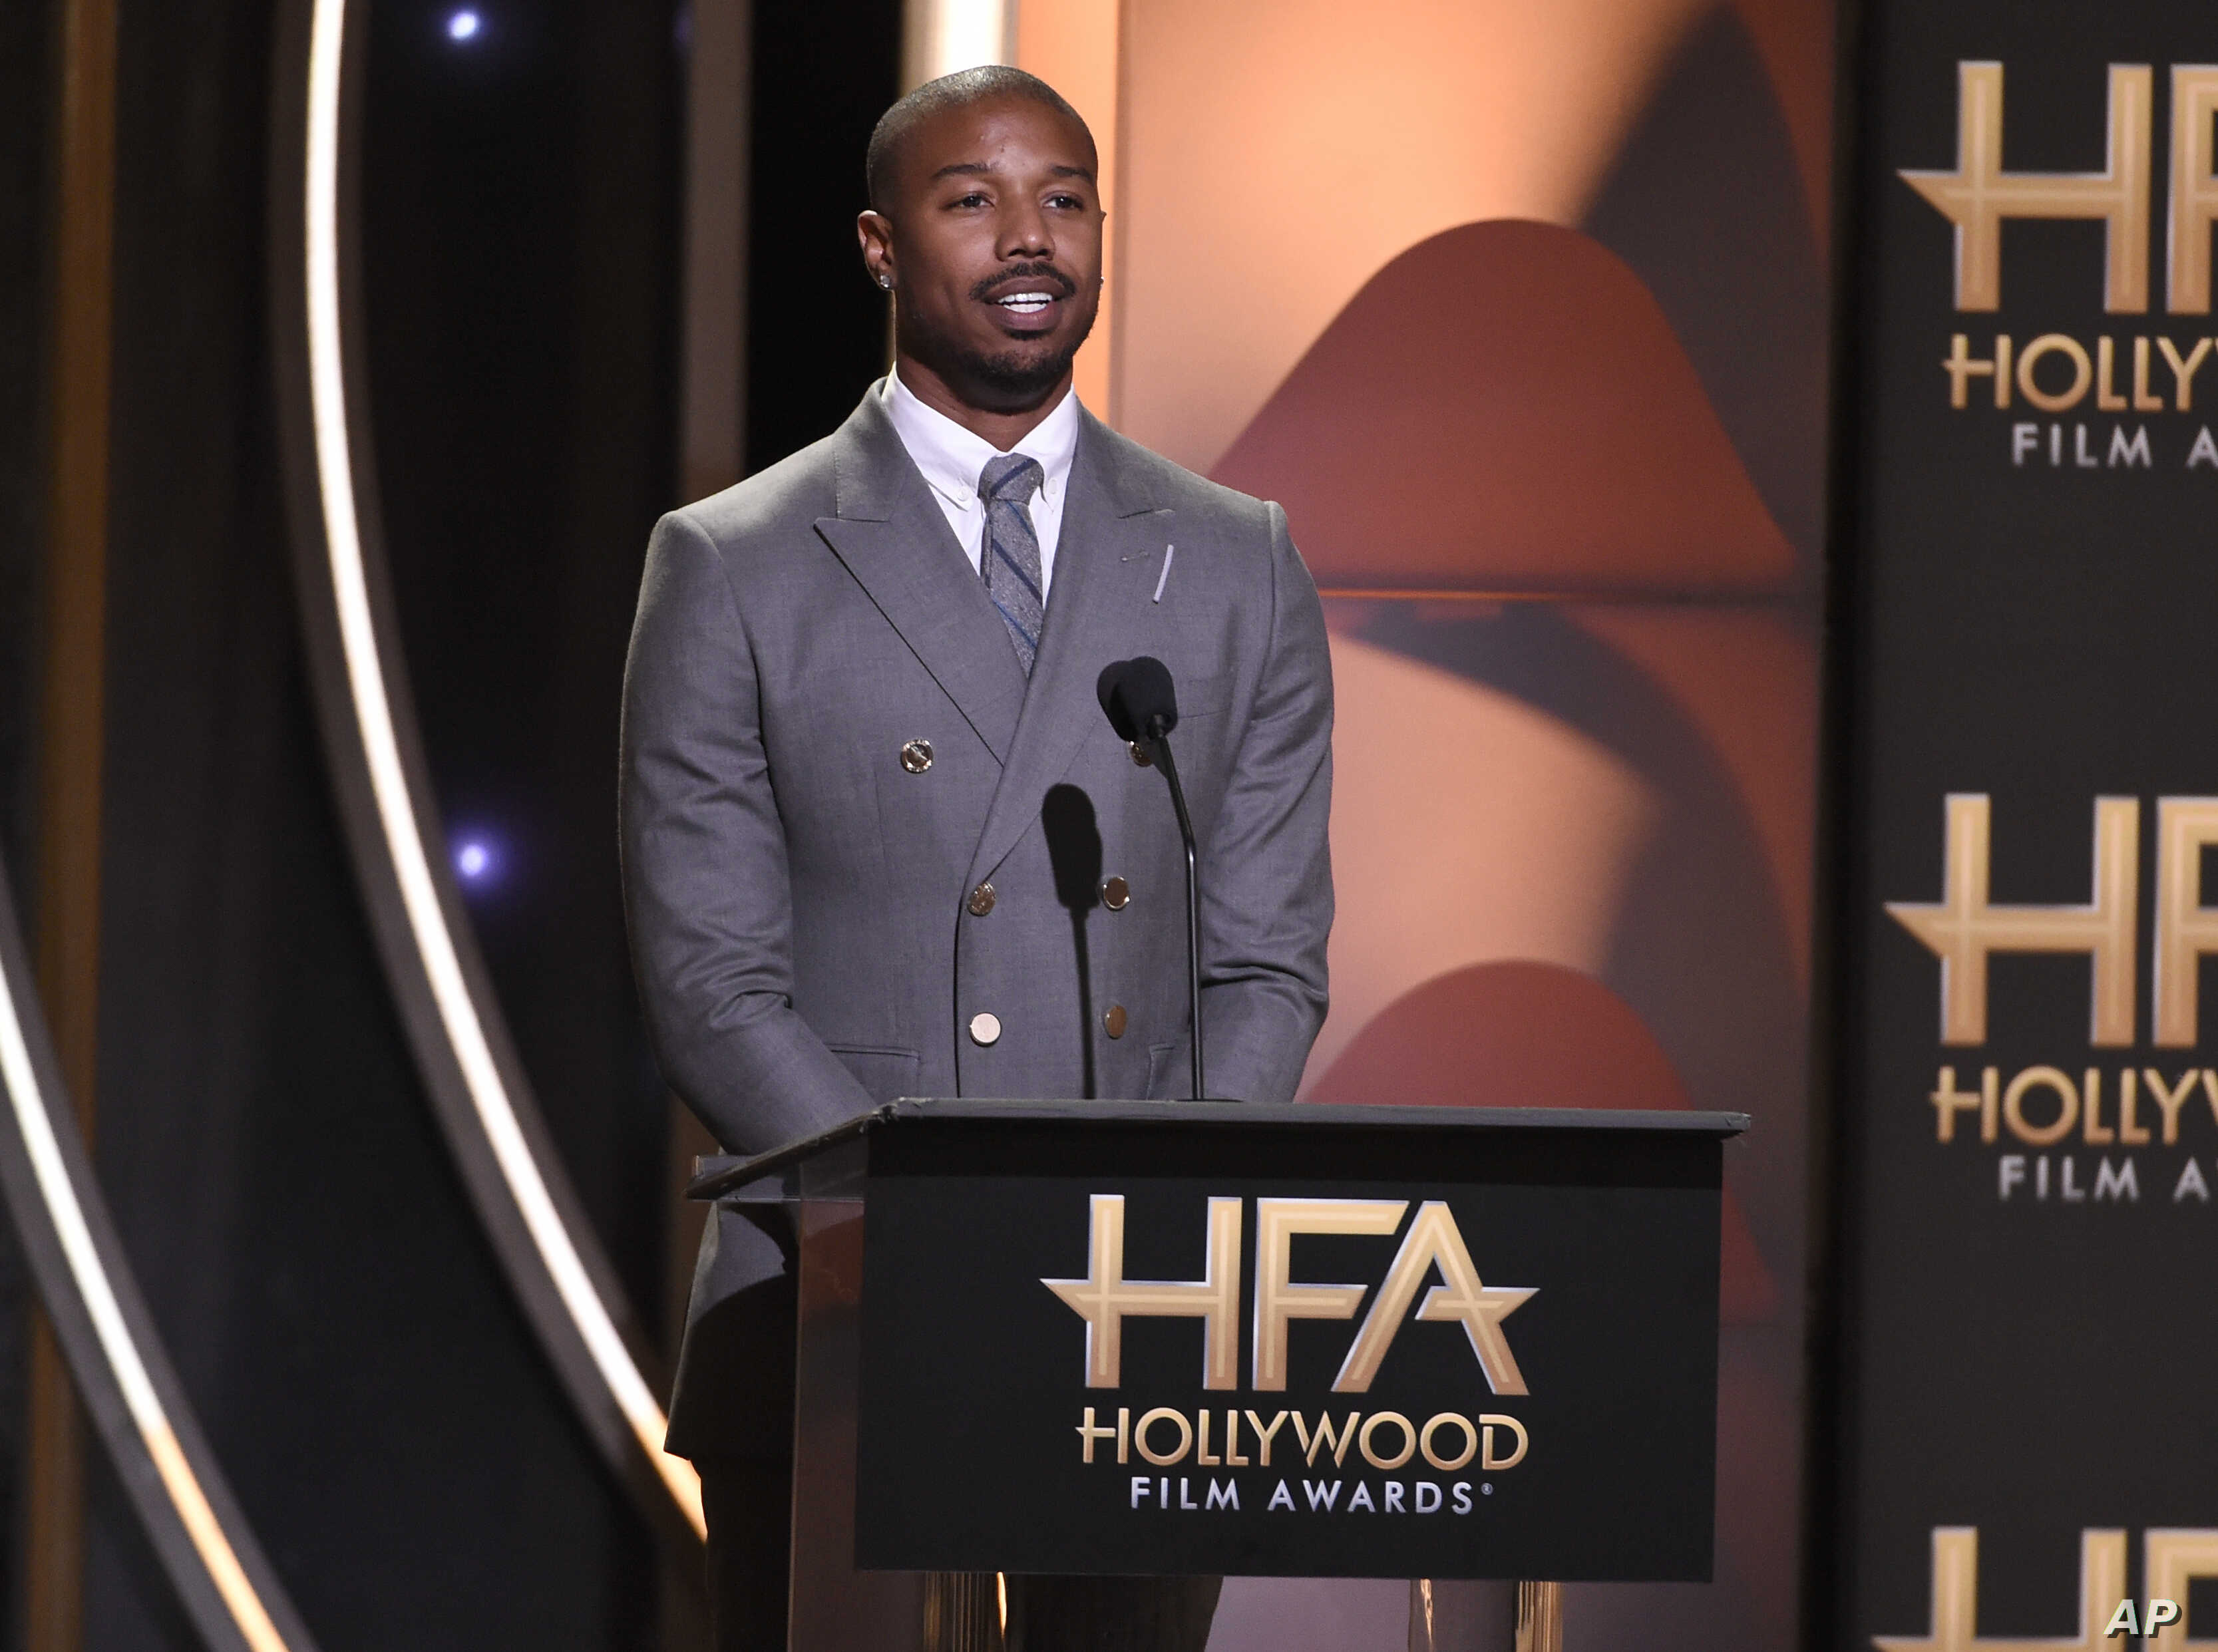 """Michael B. Jordan presents the Hollywood film award to """"Black Panther"""" at the Hollywood Film Awards on Nov. 4, 2018, at the Beverly Hilton Hotel in Beverly Hills, California."""